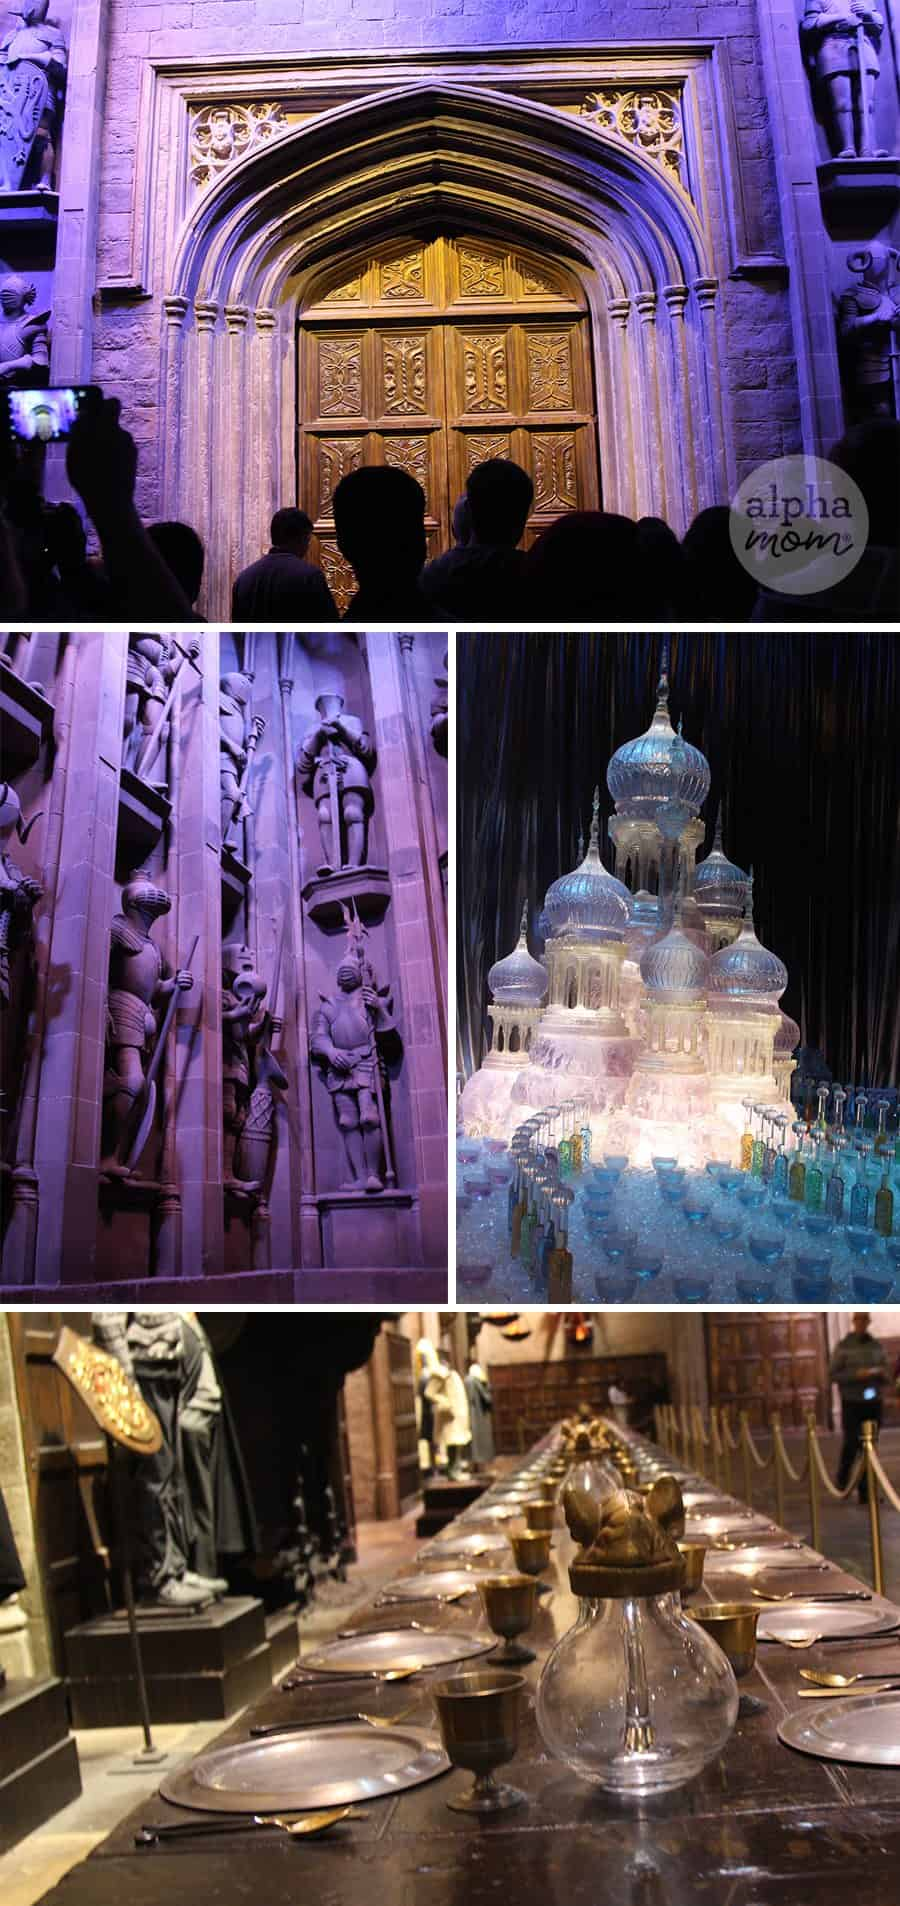 Studio Tour of the Making of Harry Potter Review (stage props)